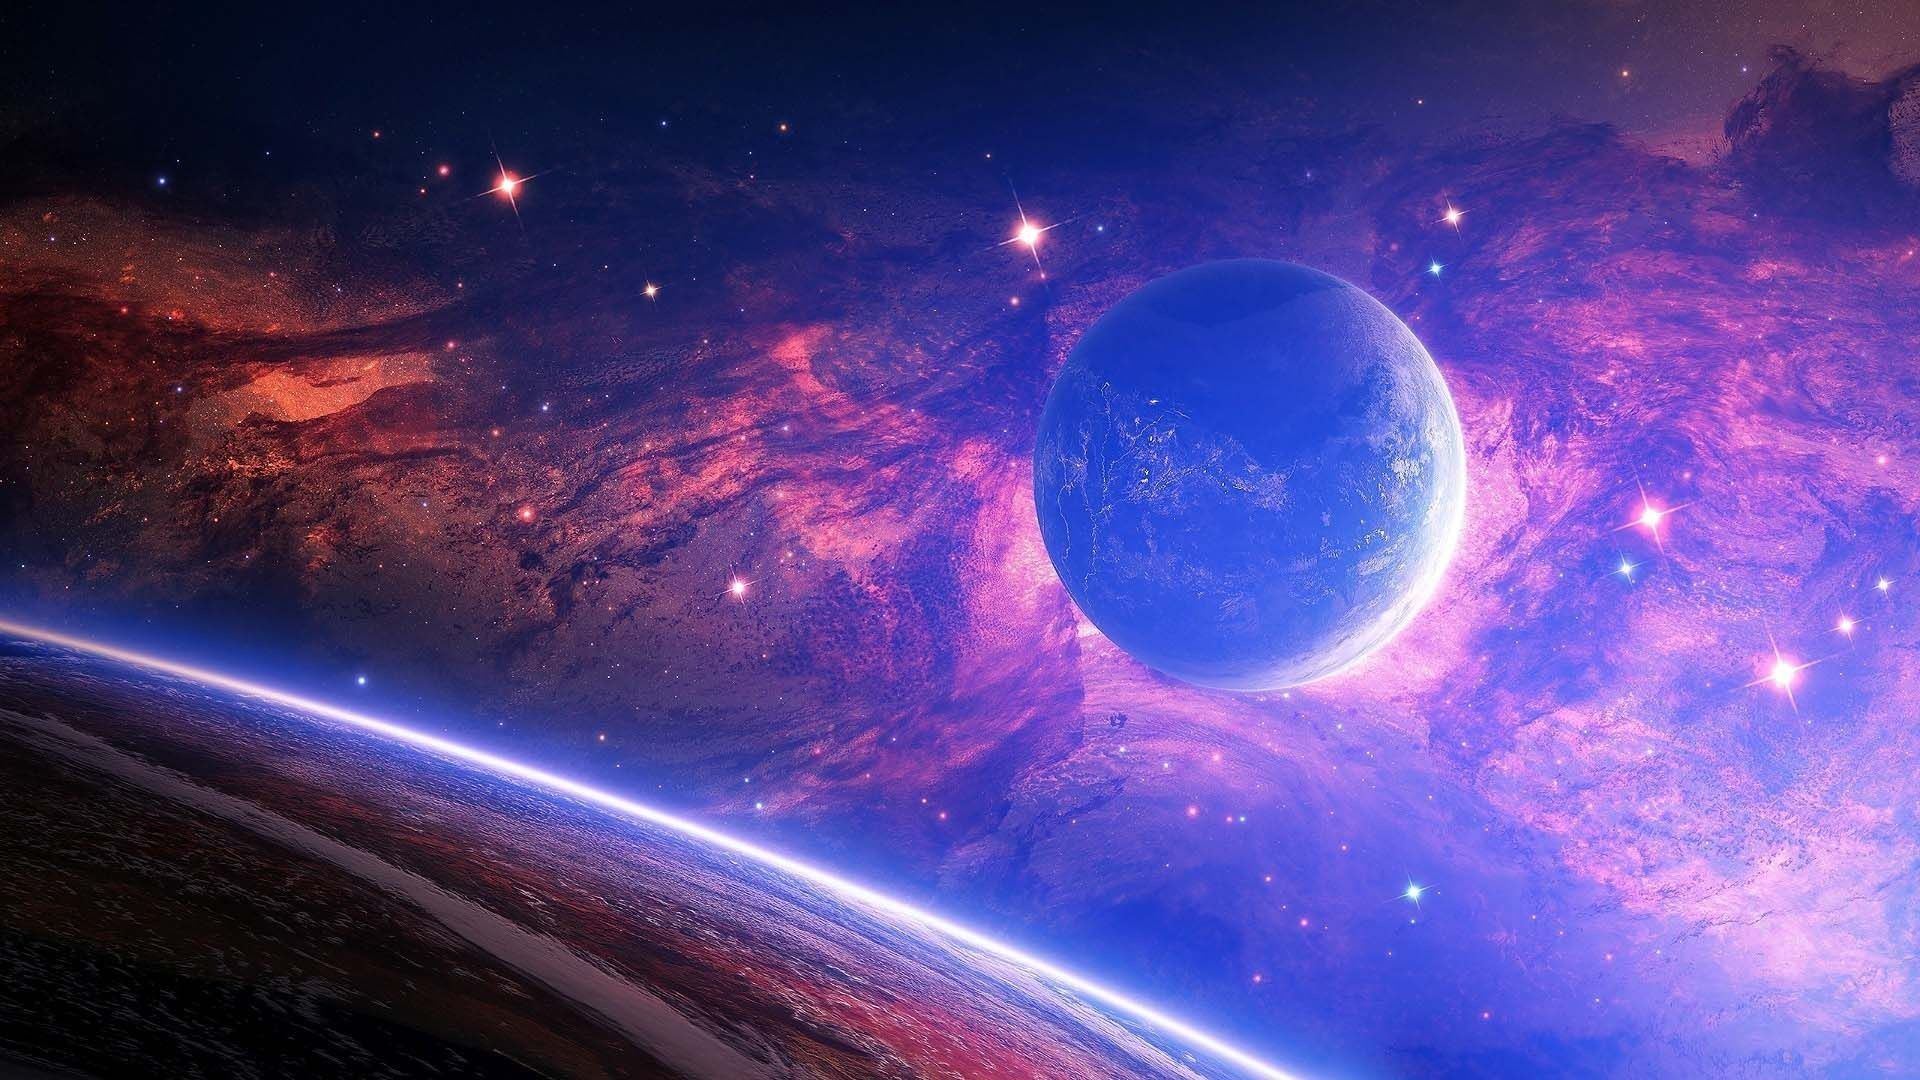 Res 1920x1080 Image Result For 4k Space Wallpapers Planets Wallpaper Wallpaper Space Hd Space